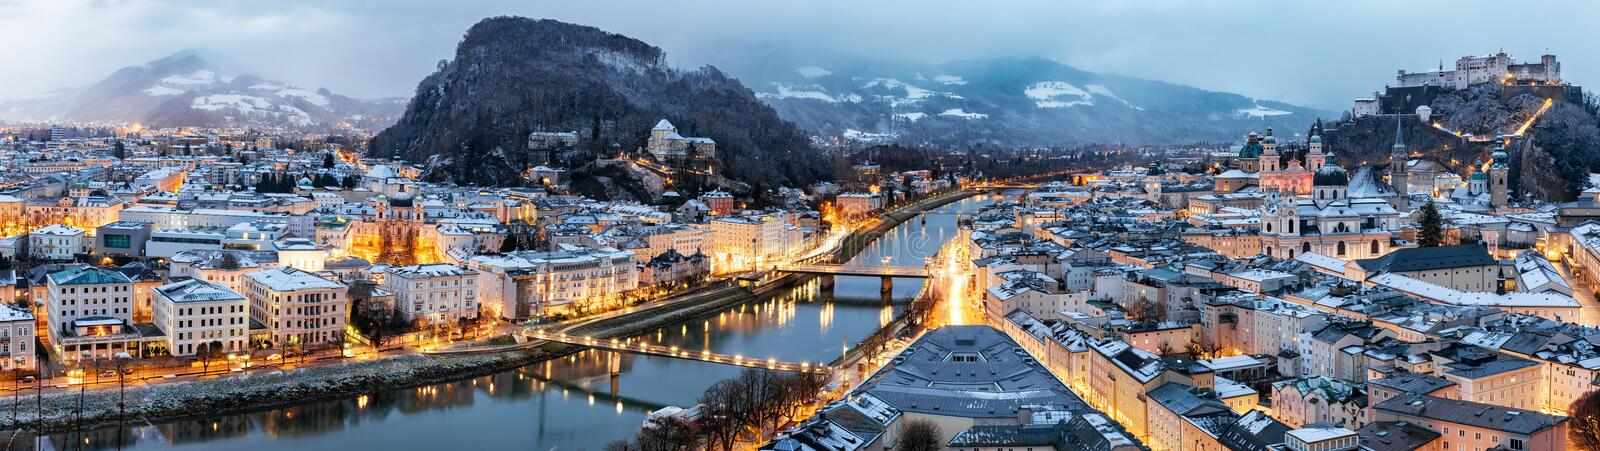 Panoramic view over Salzburg, Austria in winter time stock photo